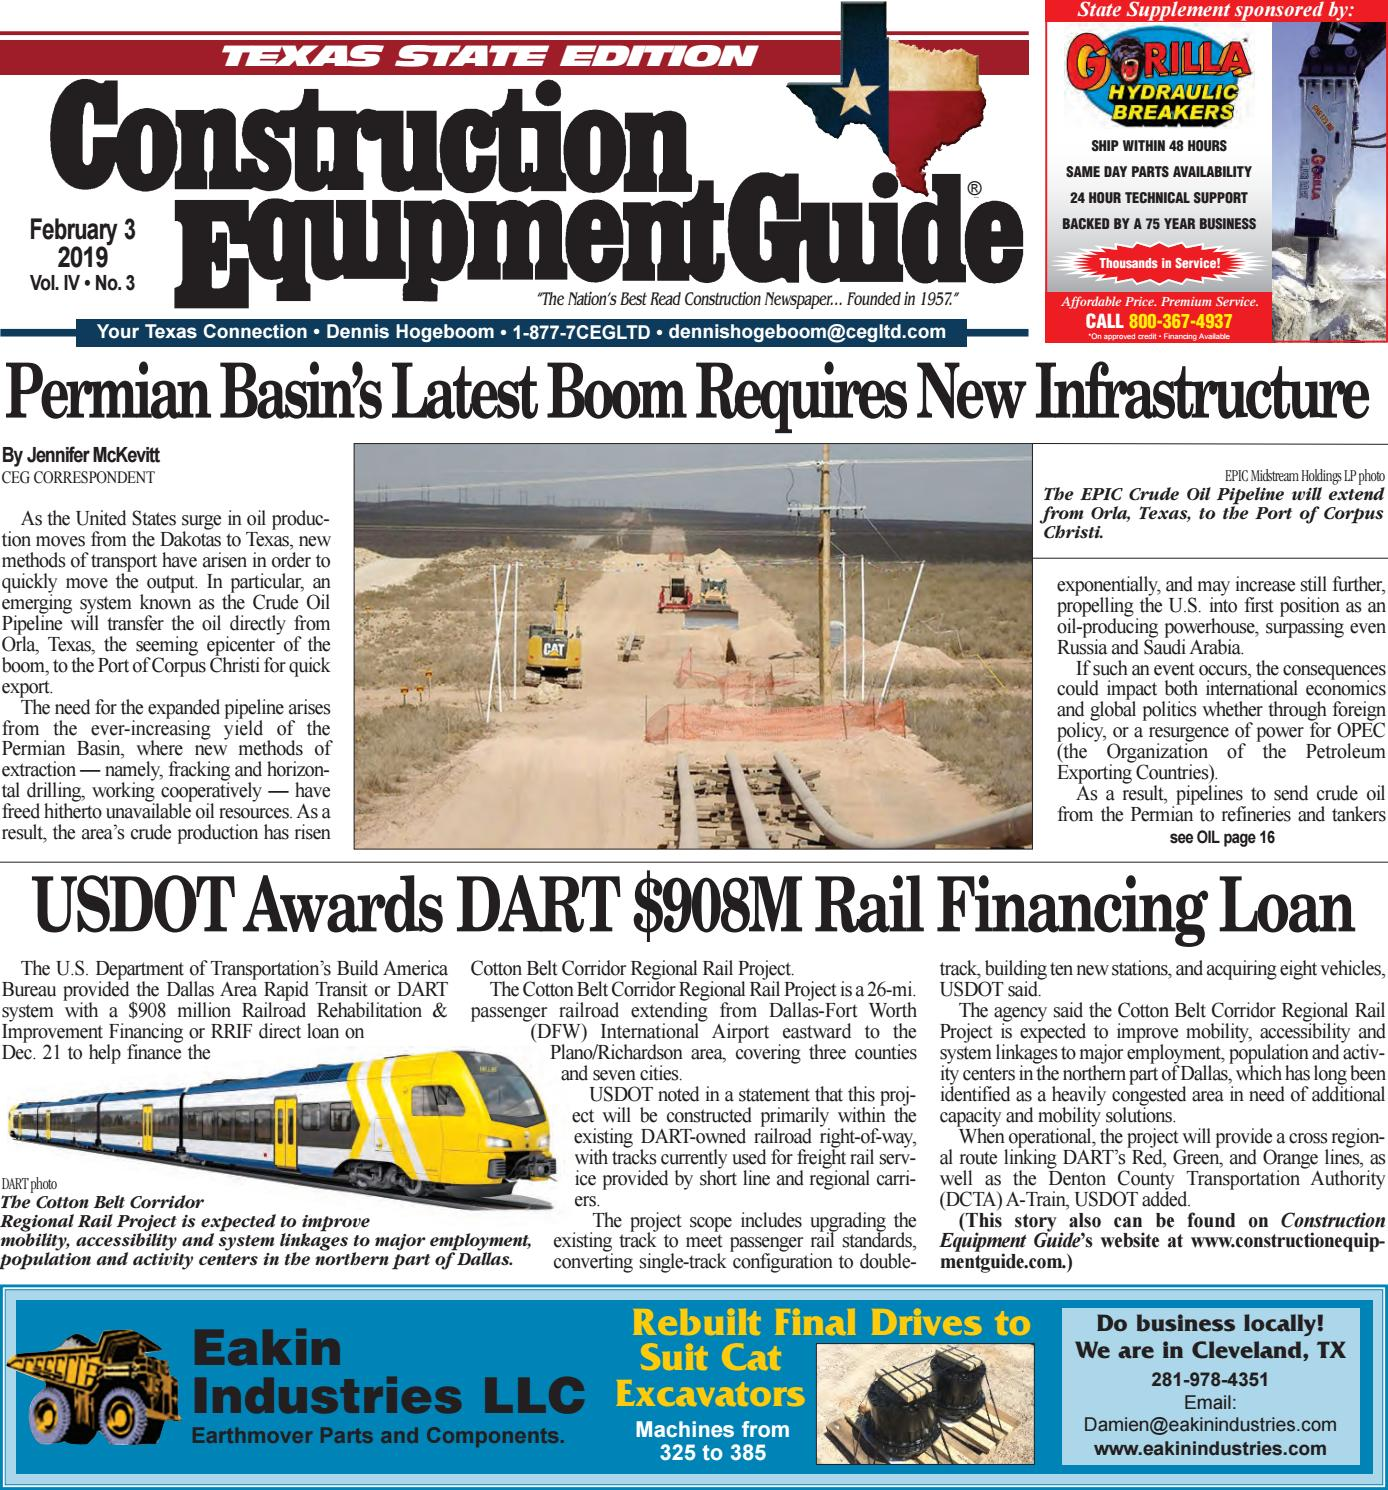 Texas 3 February 3, 2019 by Construction Equipment Guide - issuu